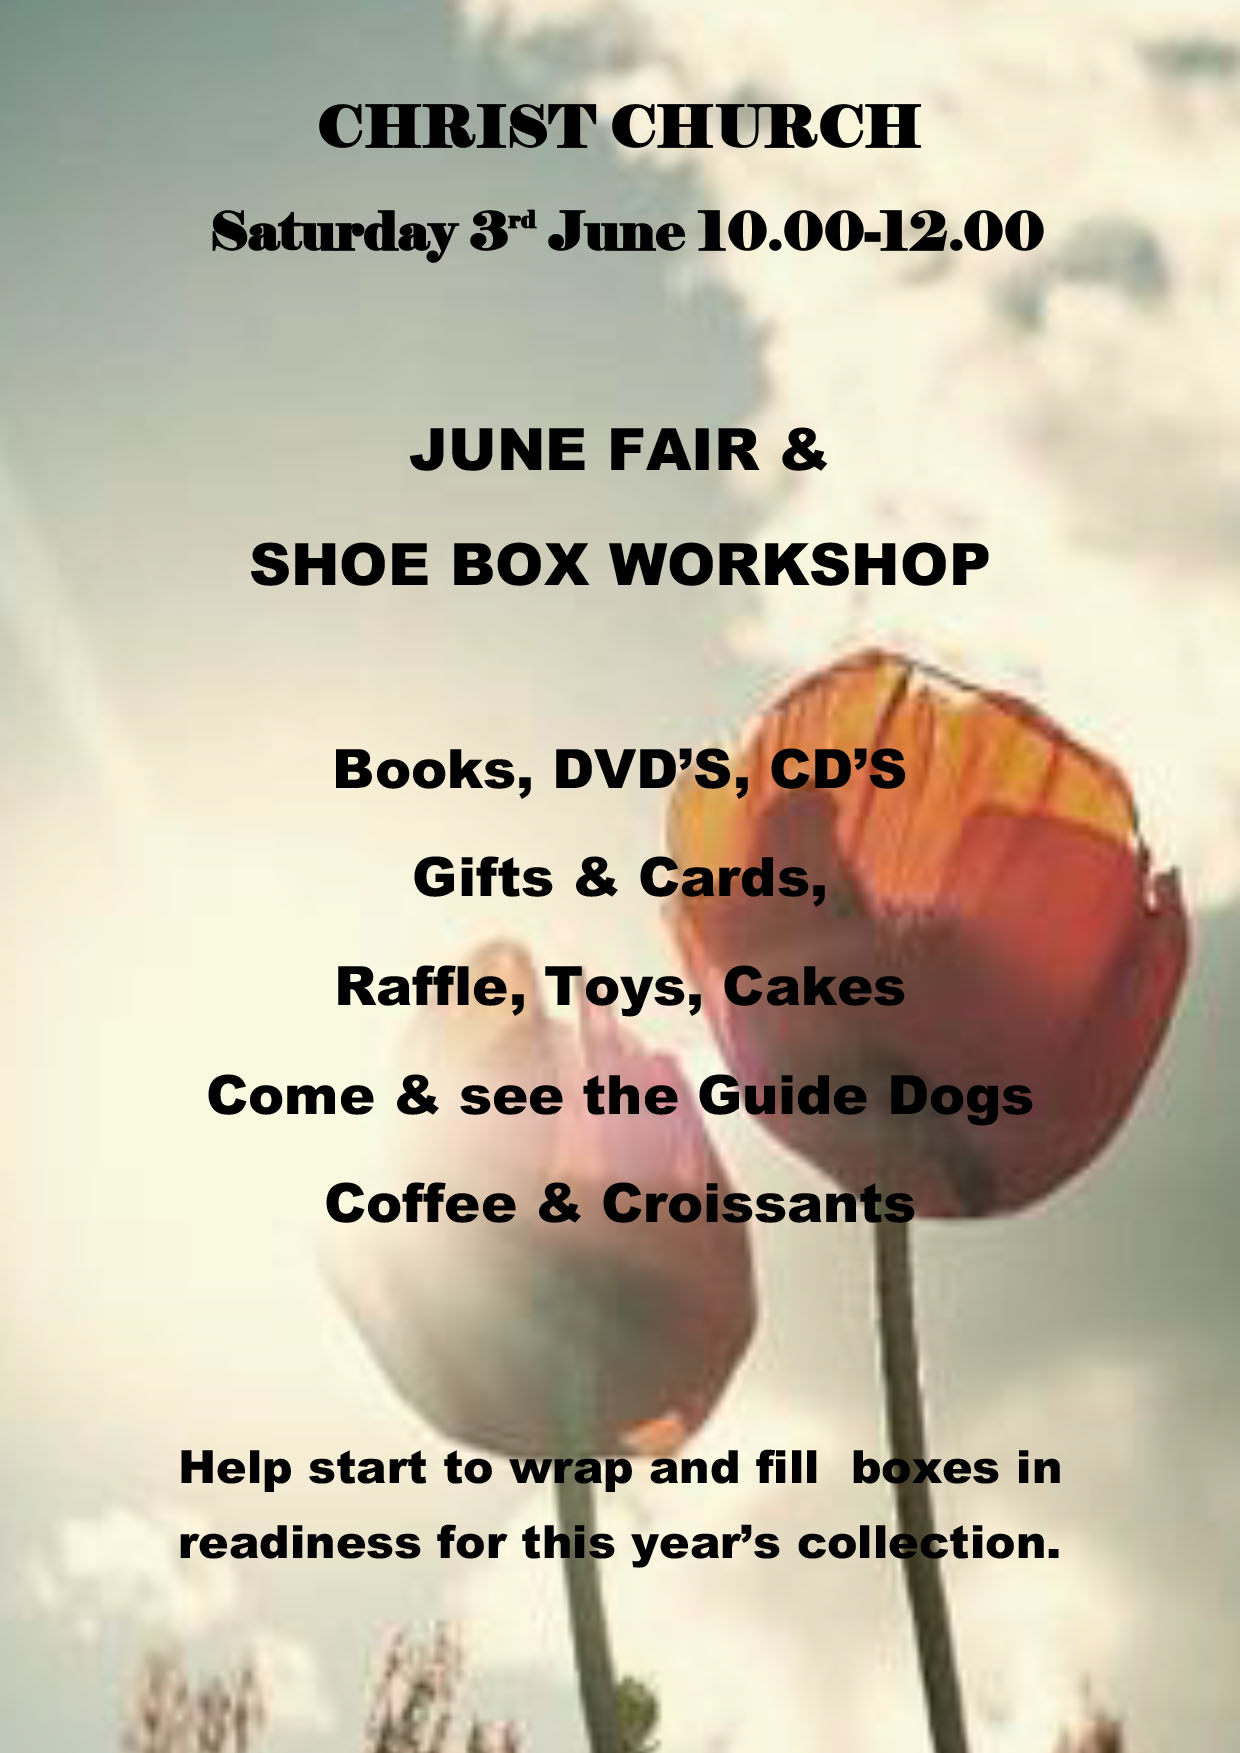 June Fair and Shoe Box Workshop